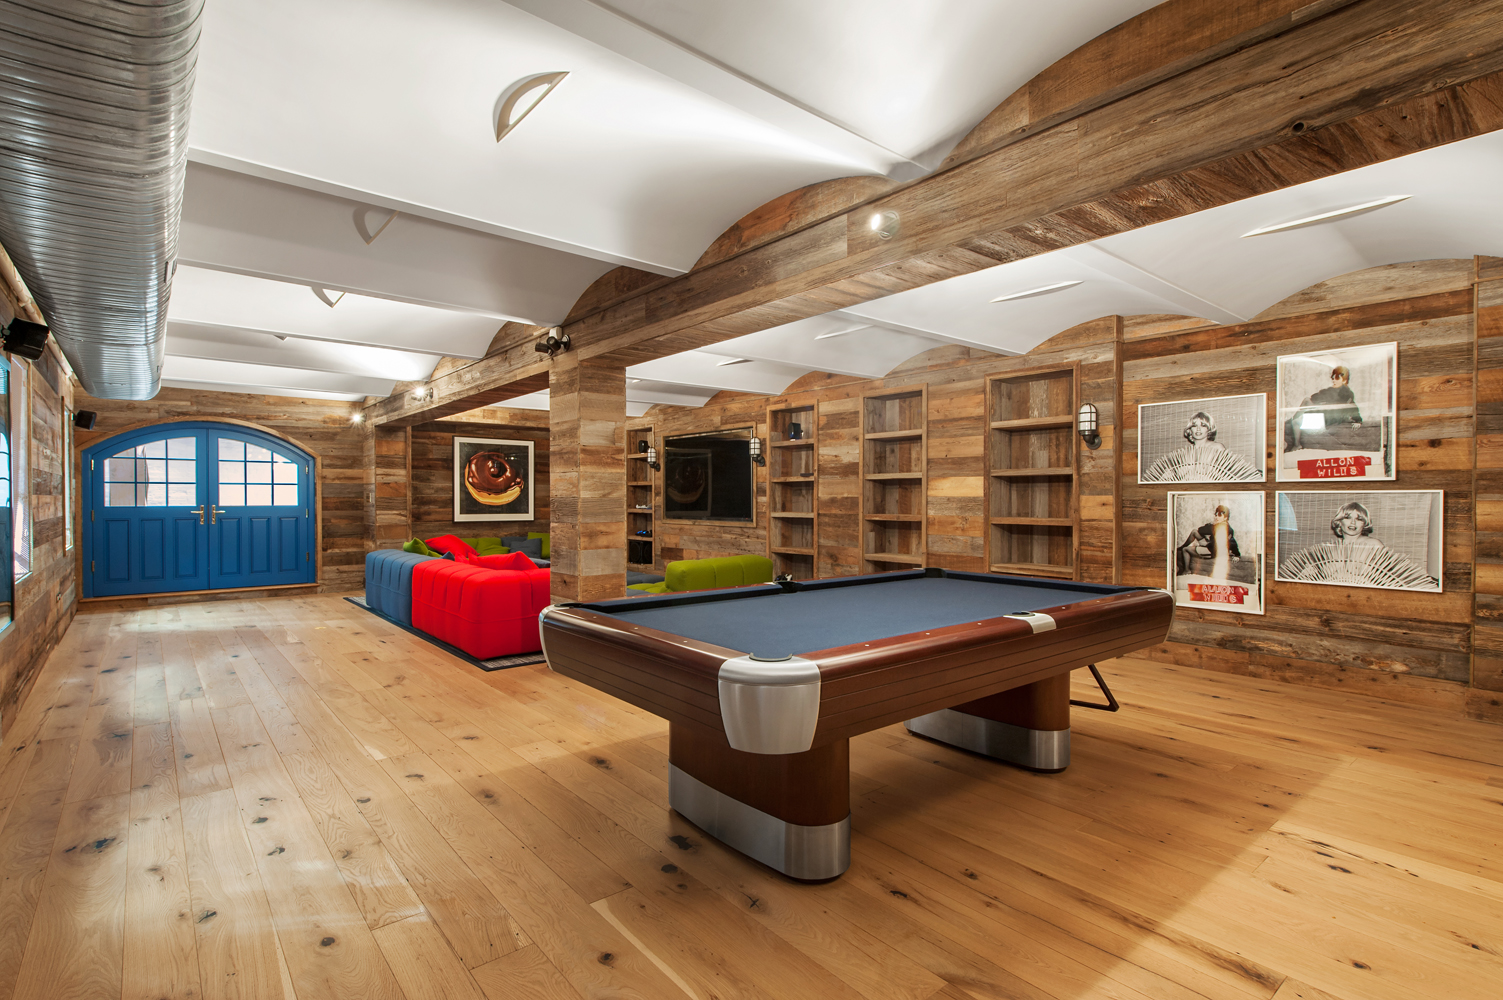 4-pool-table-wood-paneling